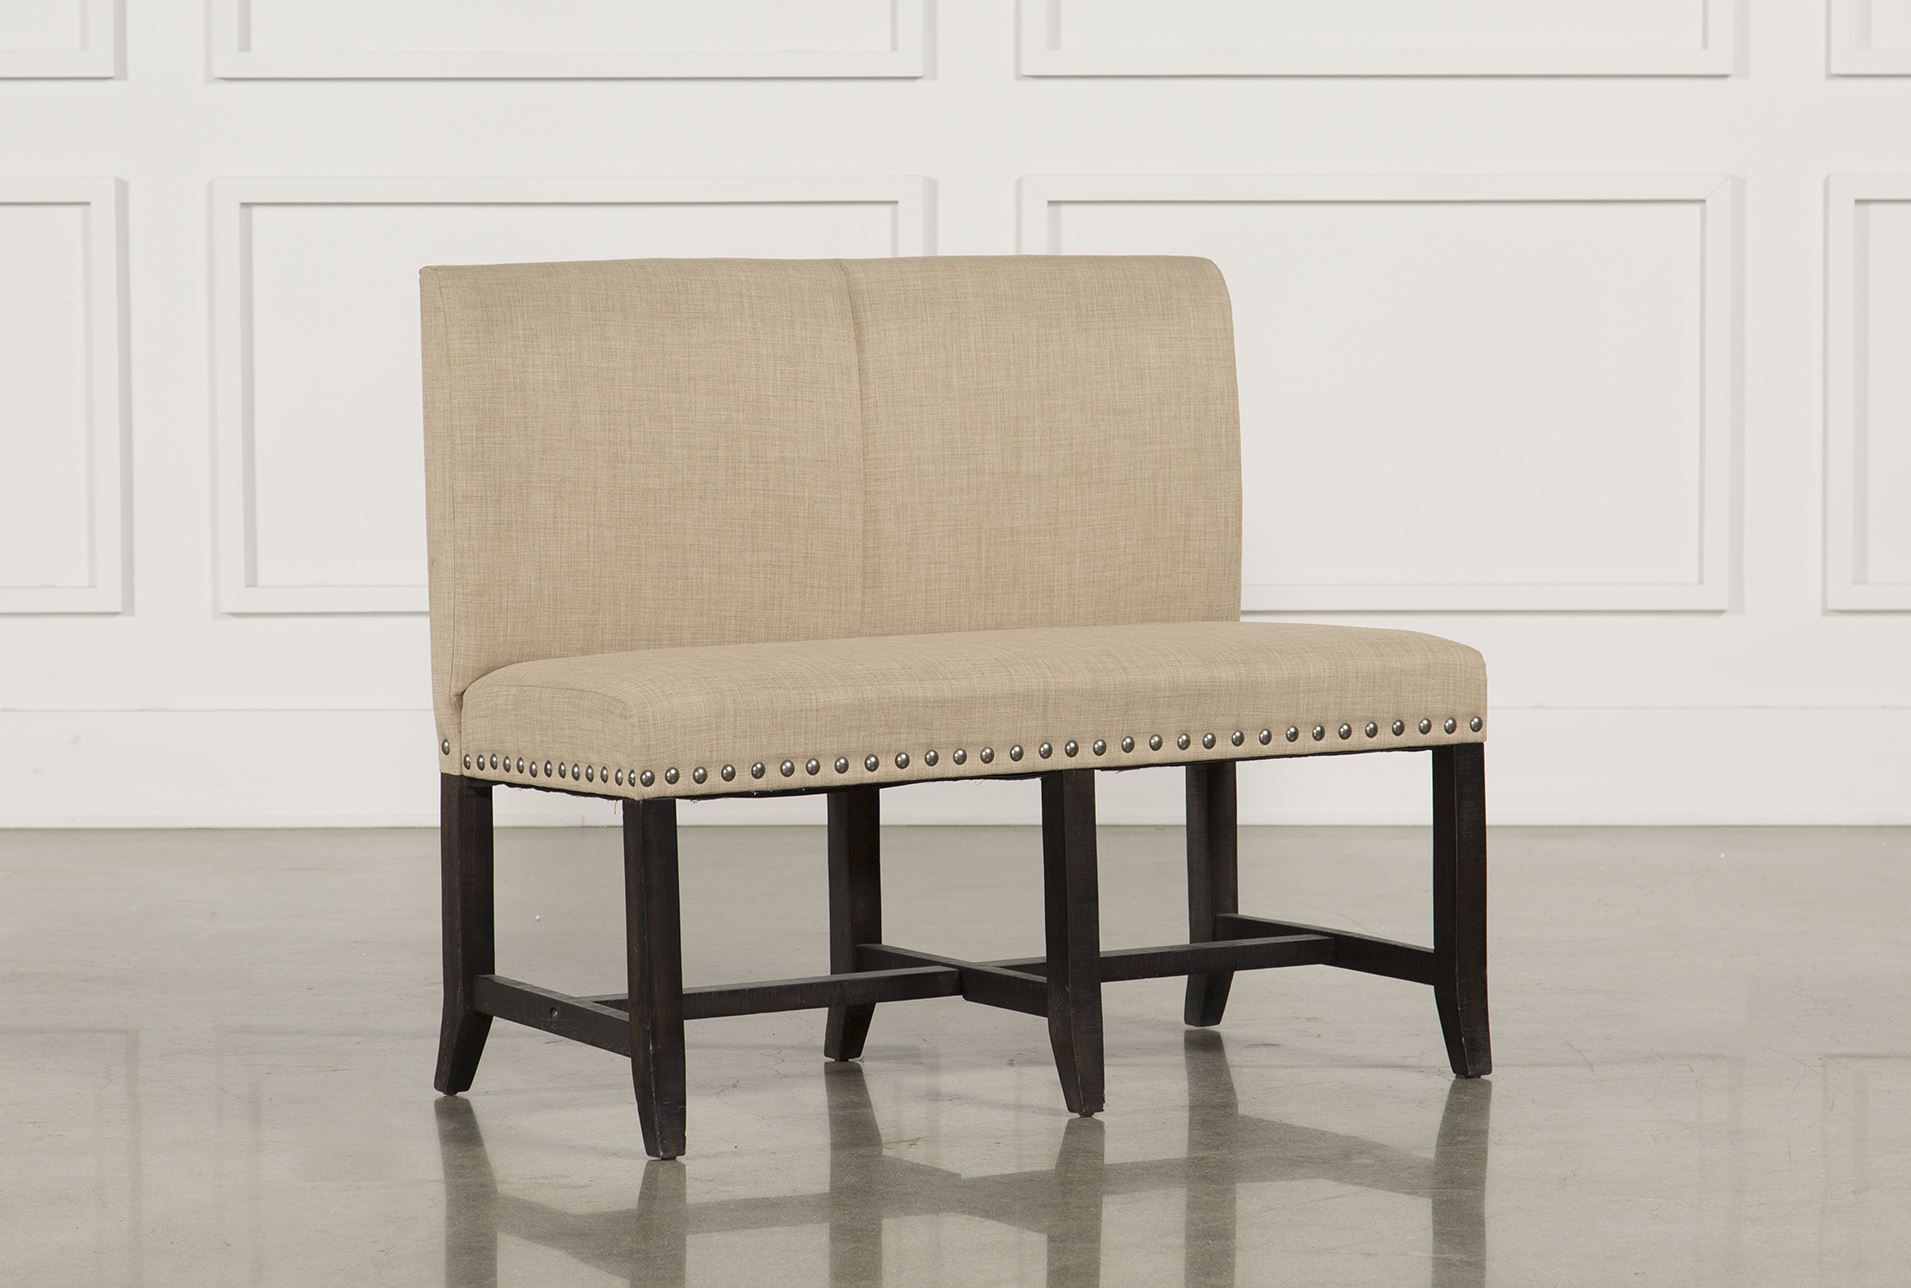 Jaxon Upholstered High-Back Bench | Bench, Living spaces and Spaces